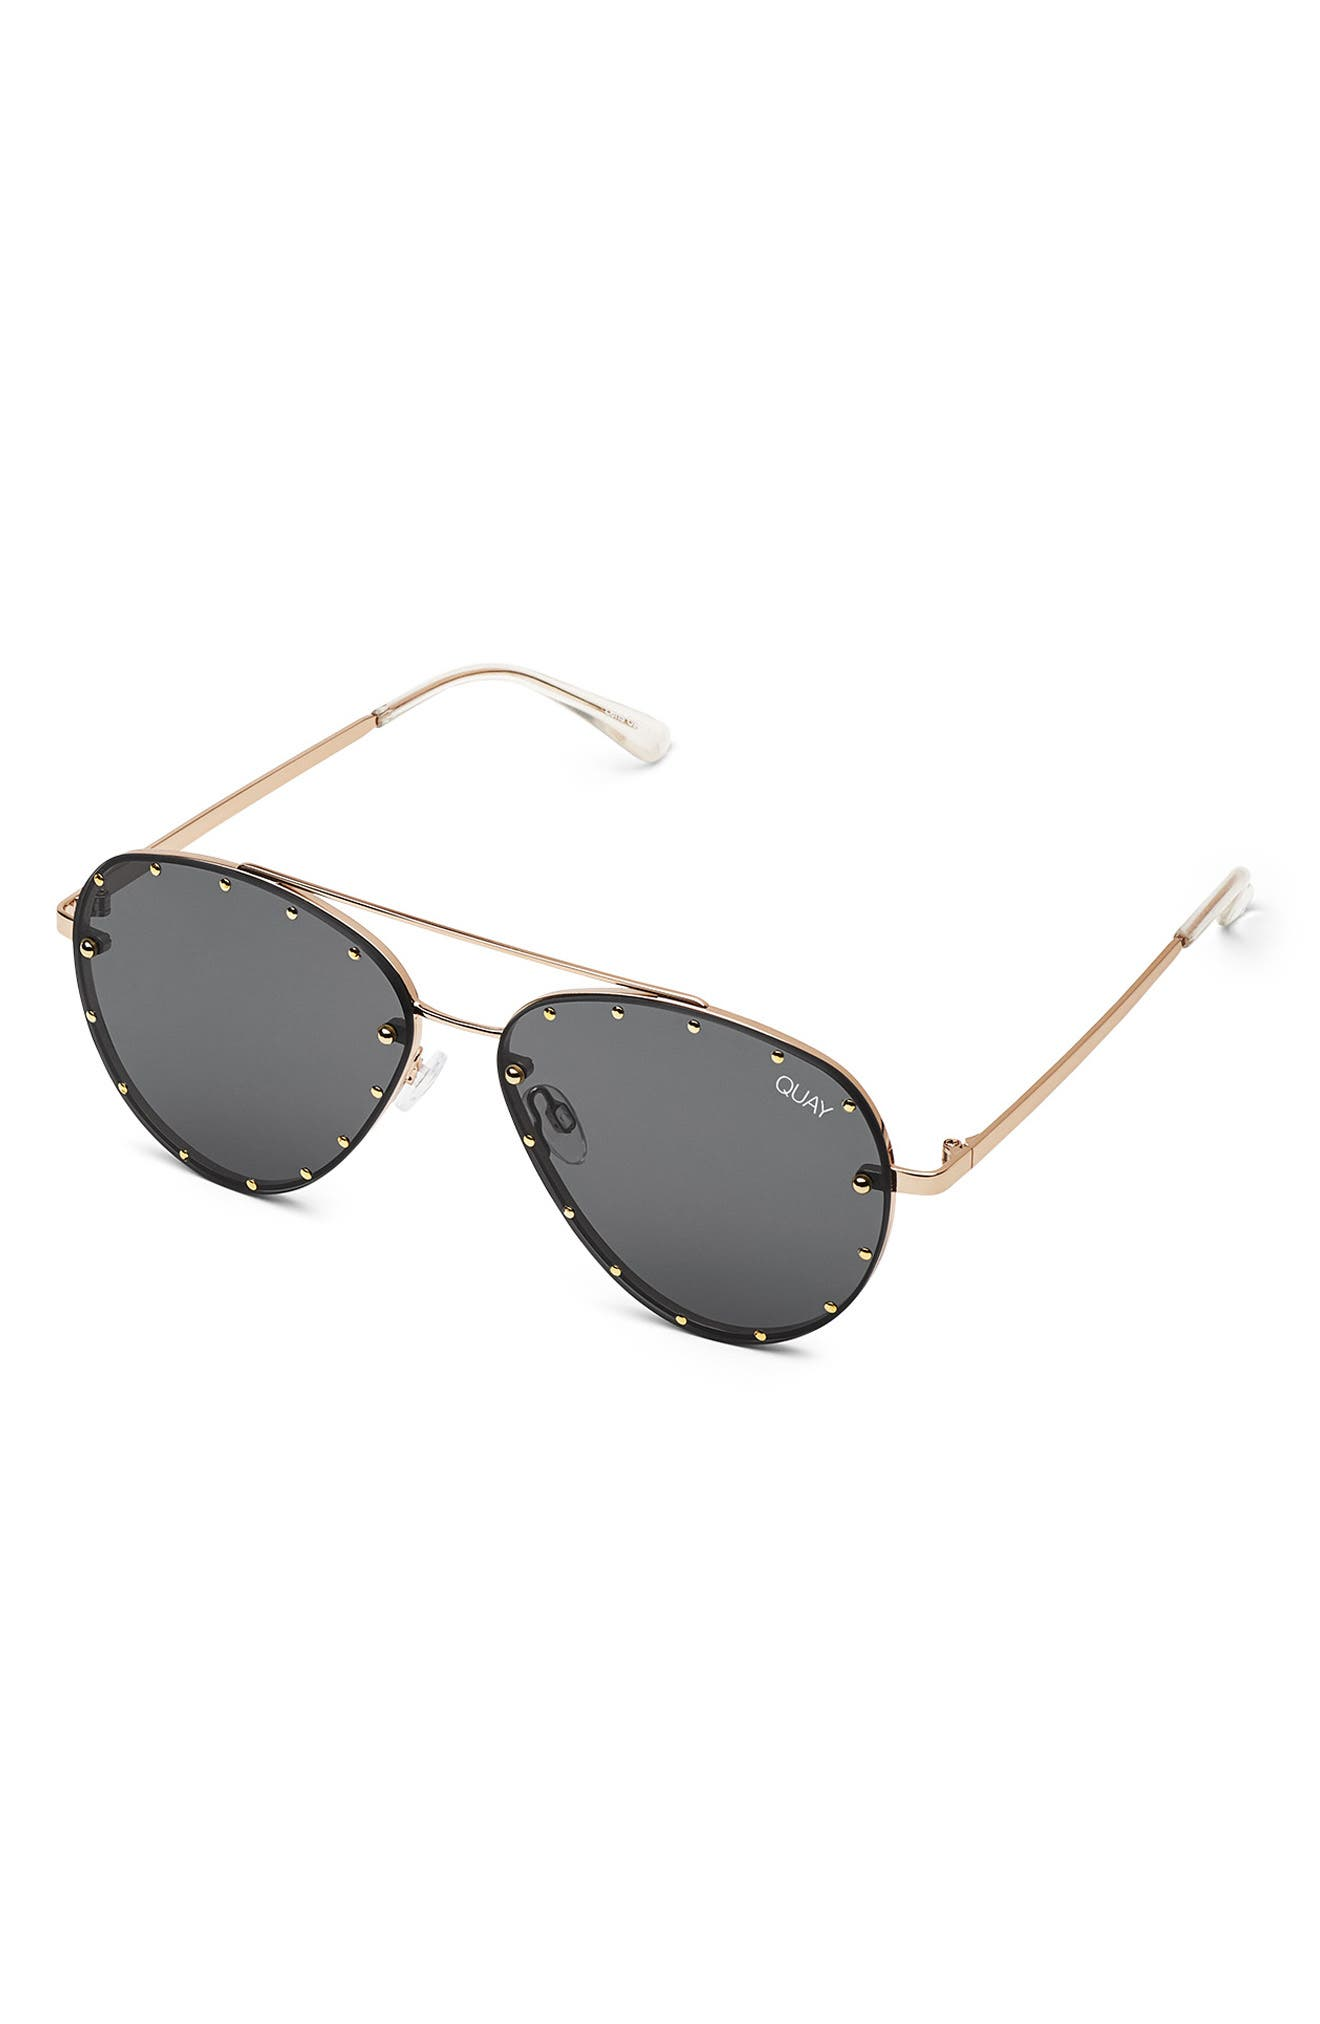 QUAY AUSTRALIA, x Jaclyn Hill Roxanne 62mm Stud Aviator Sunglasses, Alternate thumbnail 3, color, GOLD / SMOKE